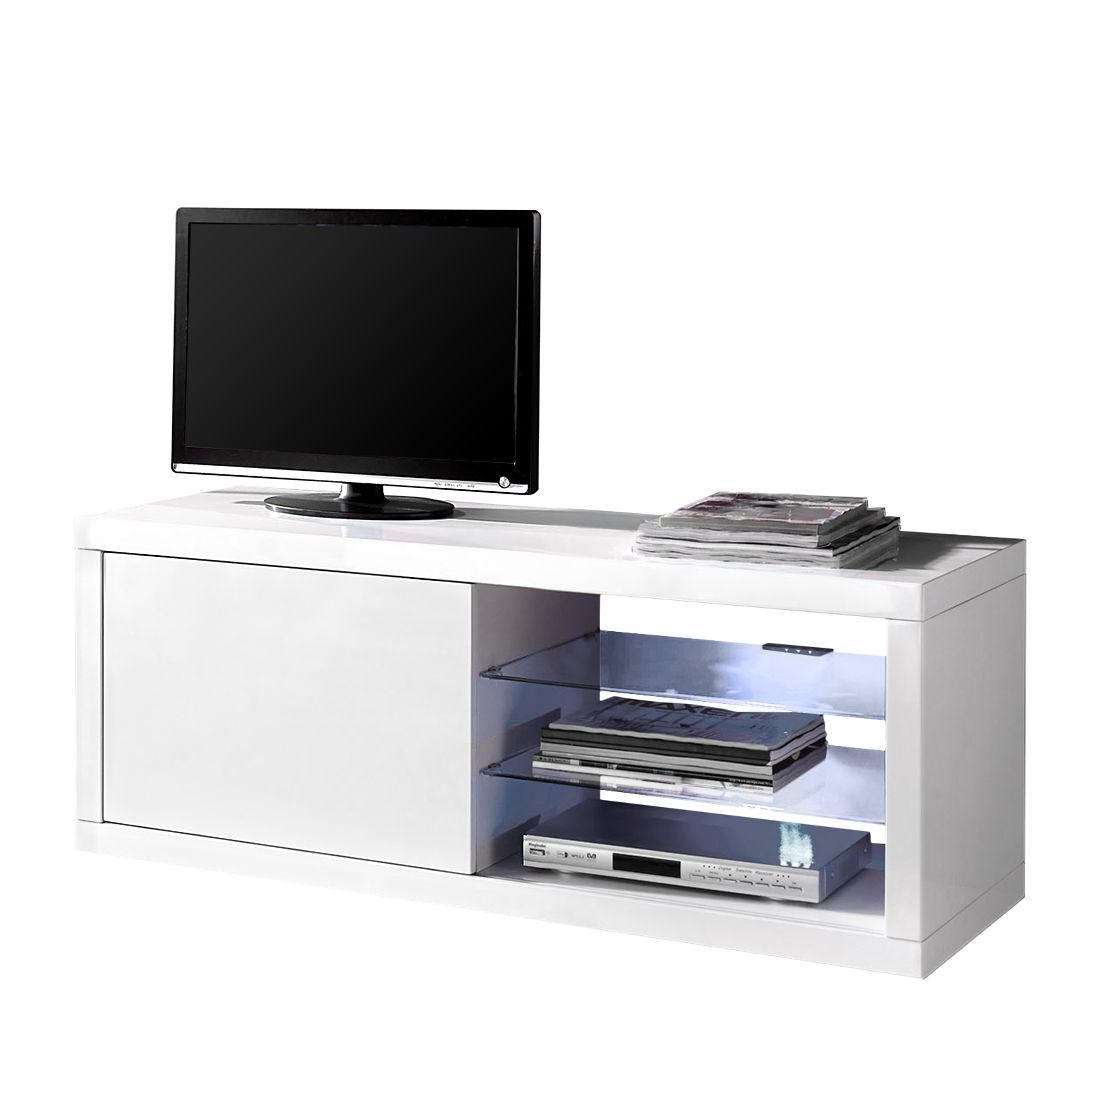 meuble tv largeur 110 cm profondeur 42 largeur 110 cm. Black Bedroom Furniture Sets. Home Design Ideas